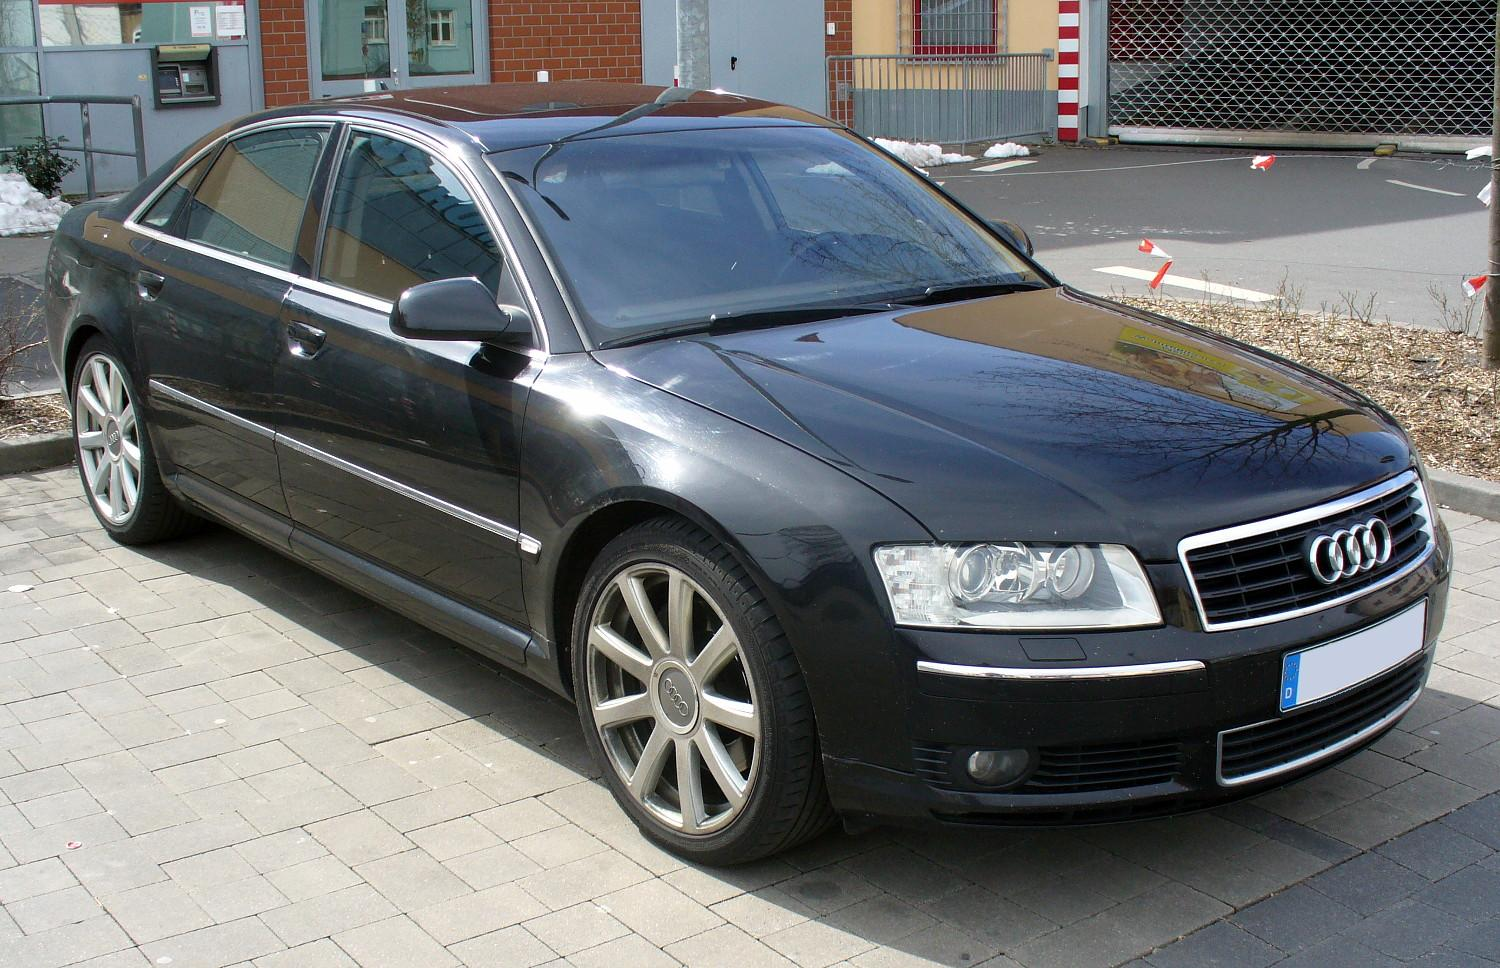 Description Audi A8 D3 Vorfacelift Jpg Images Frompo